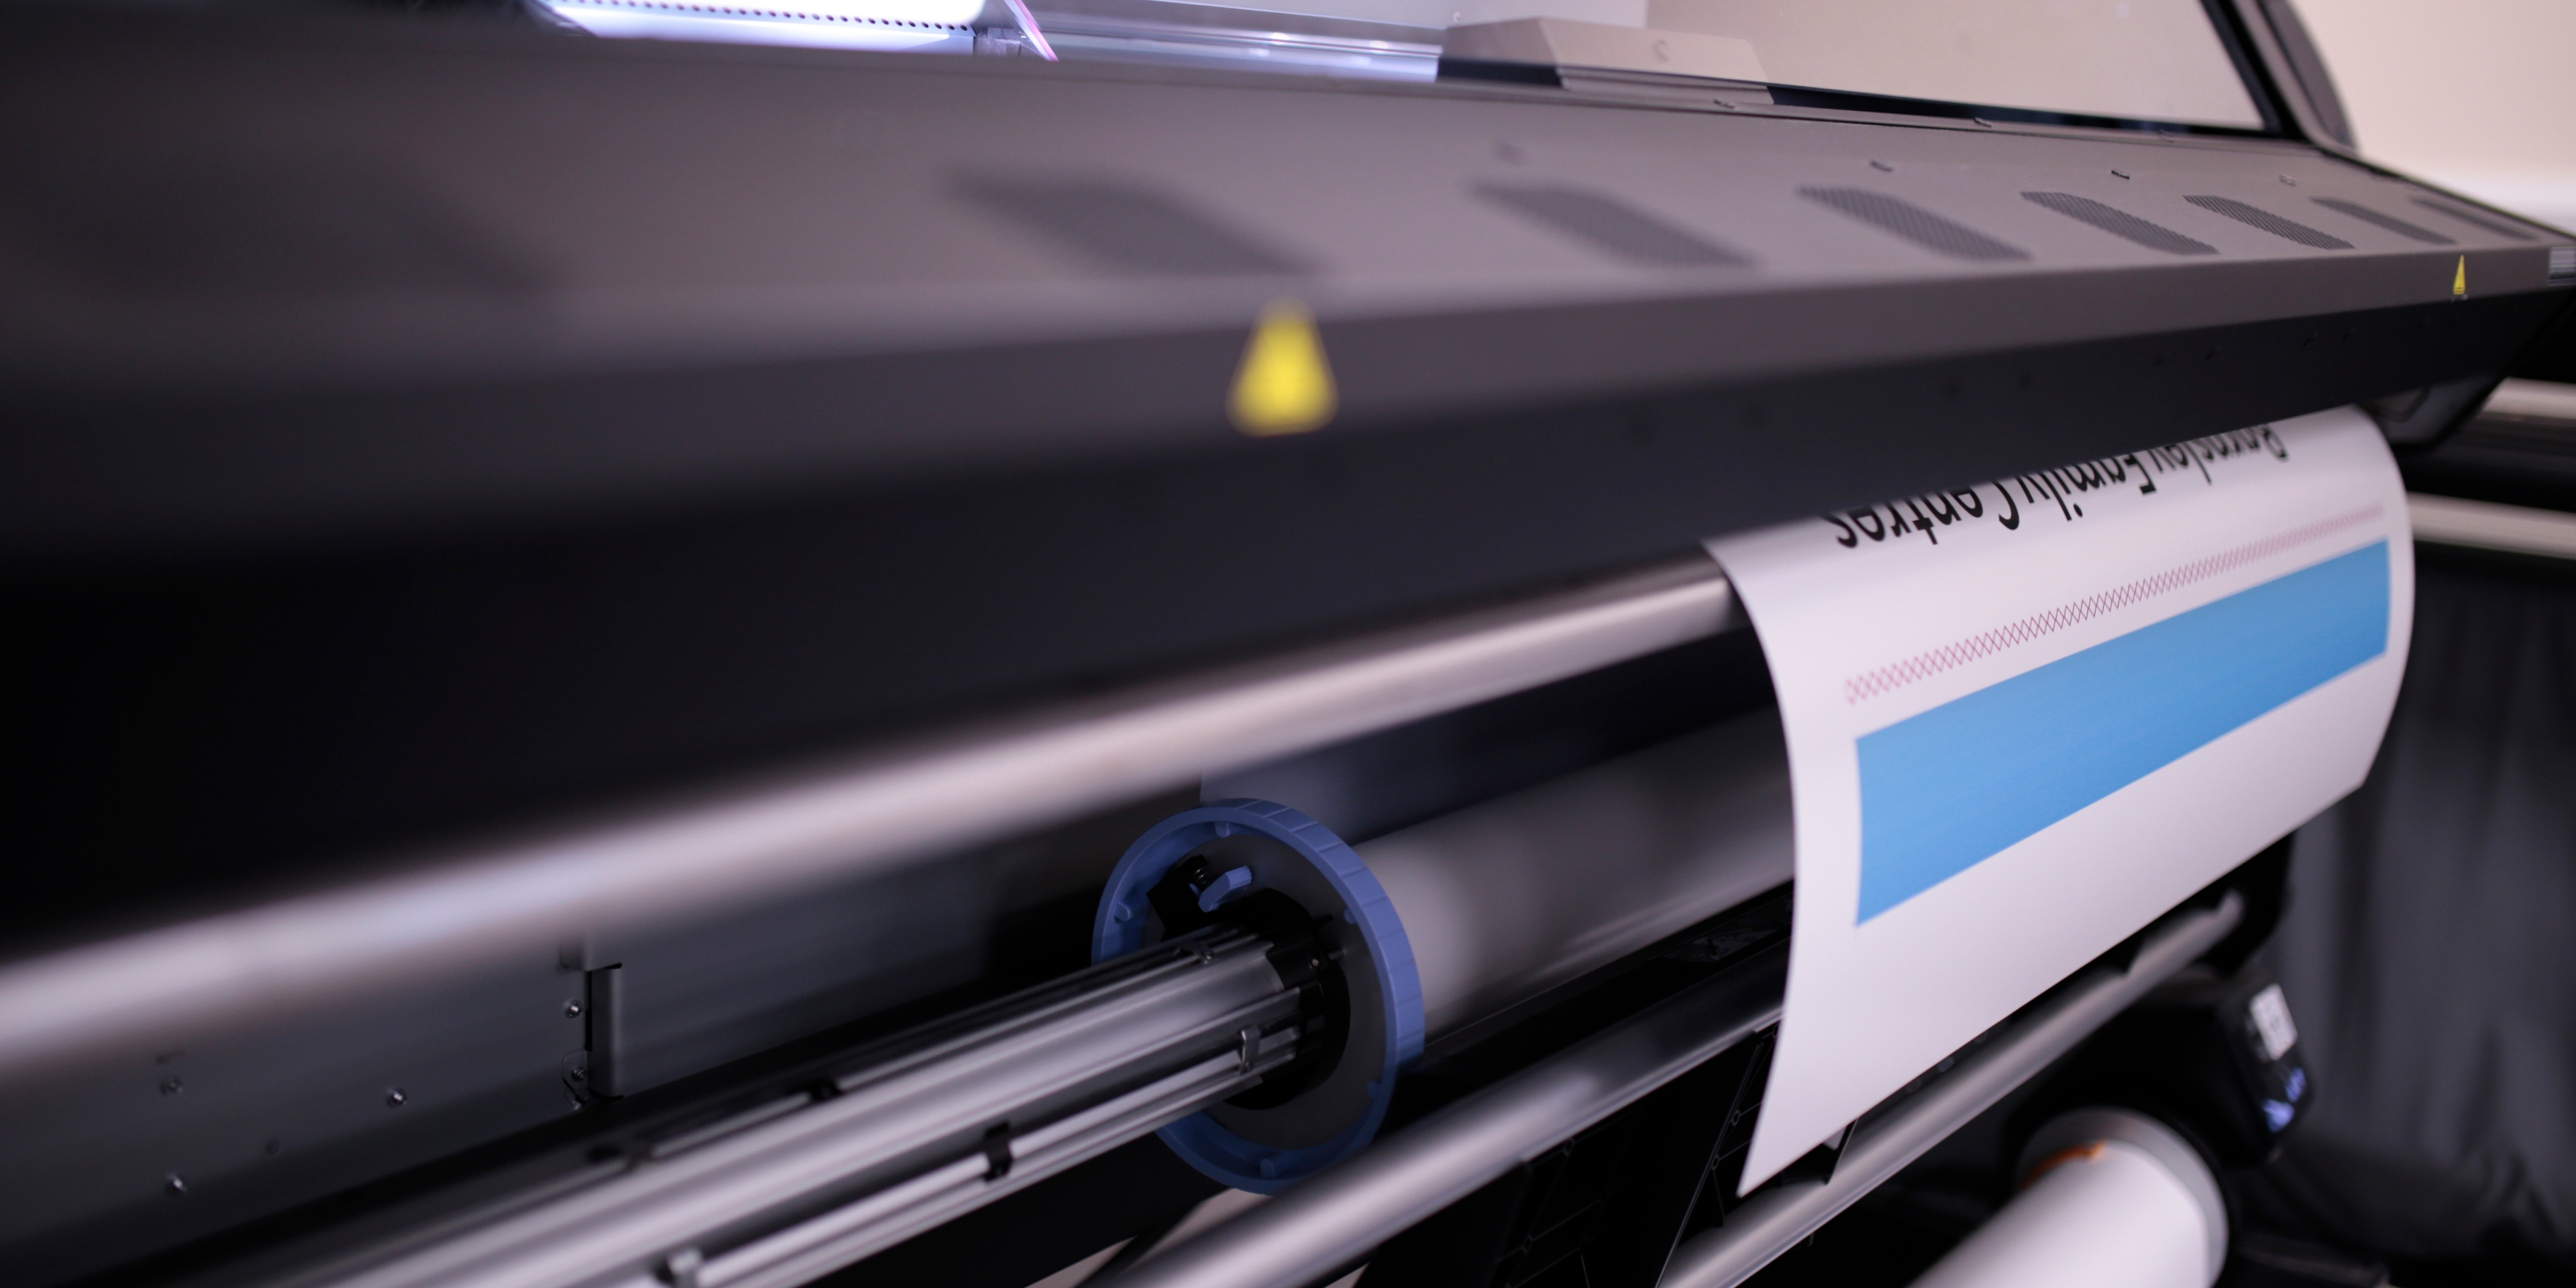 Beginning of a poster being printed on a large format printing machine